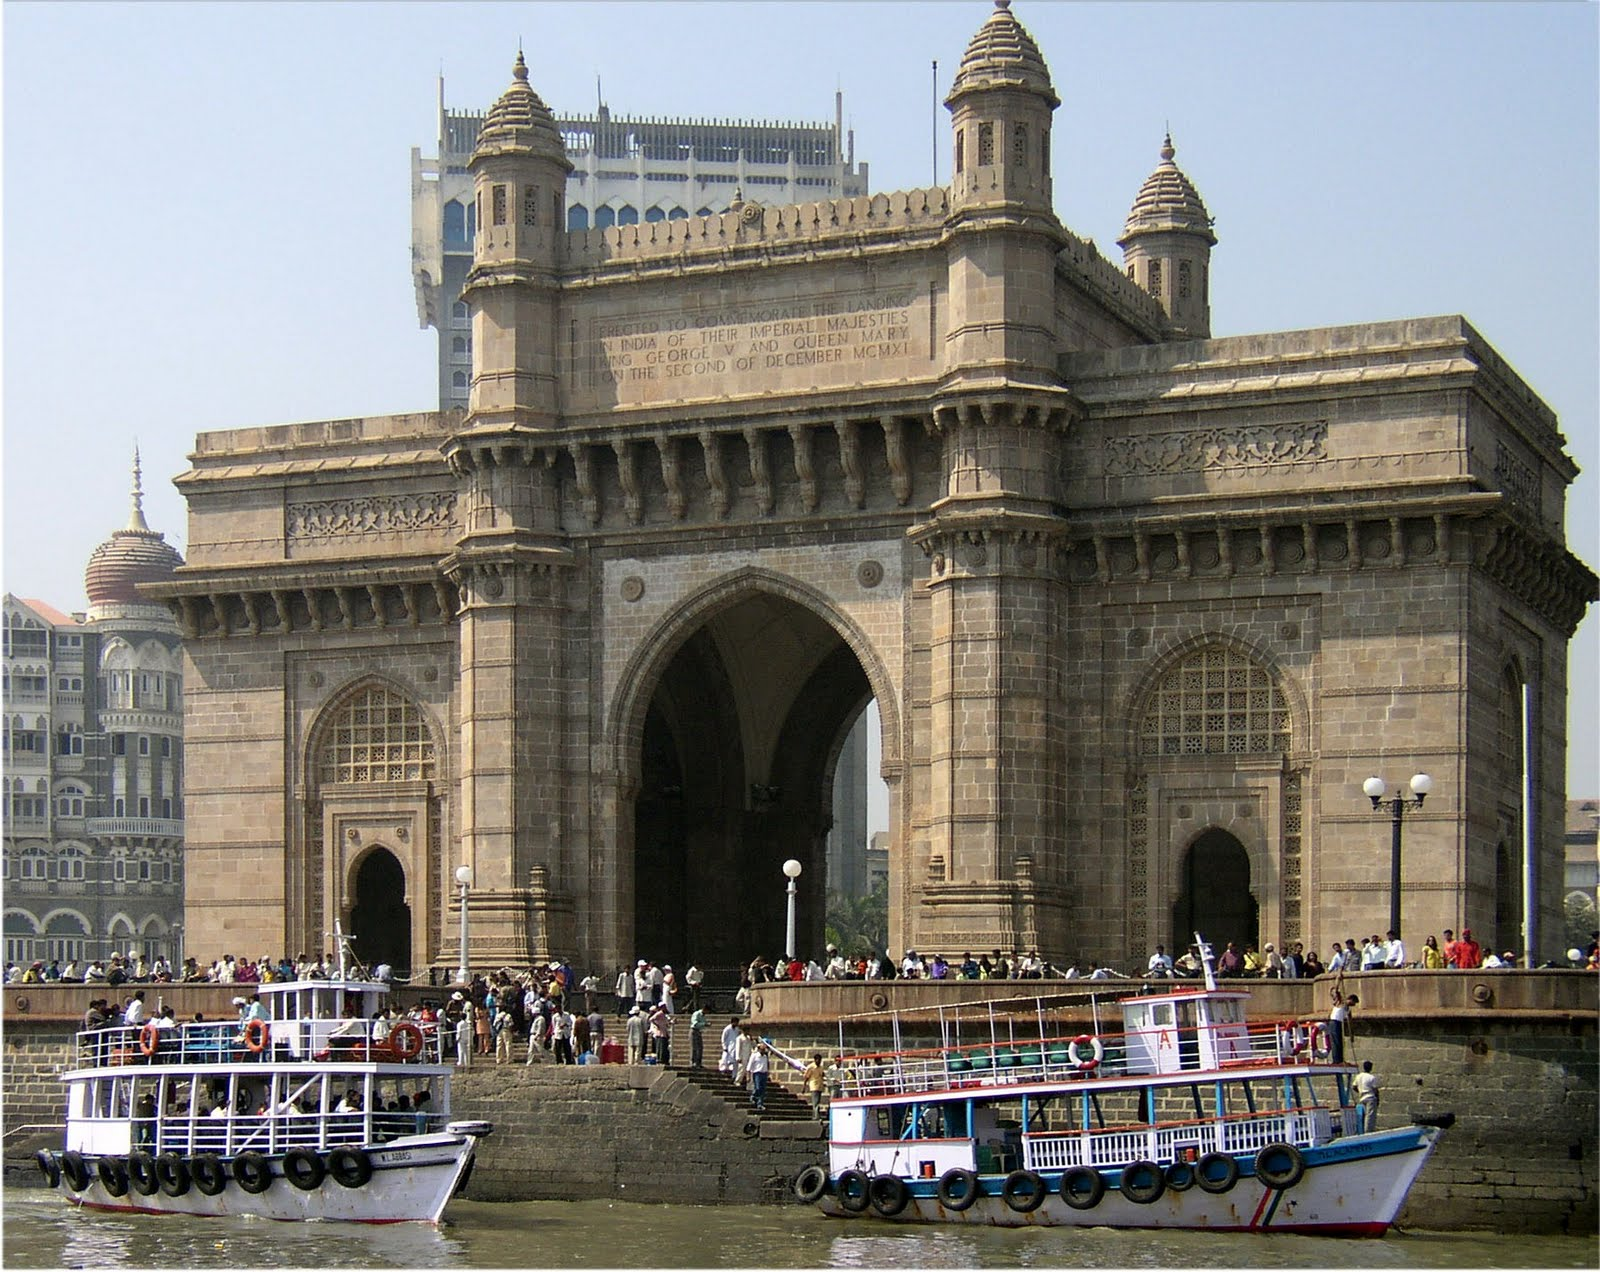 my world essay on mumbai thus we can conclude the mumbai is a place worth iong at least once as for me the very though of leaving this city send jitters down my spine